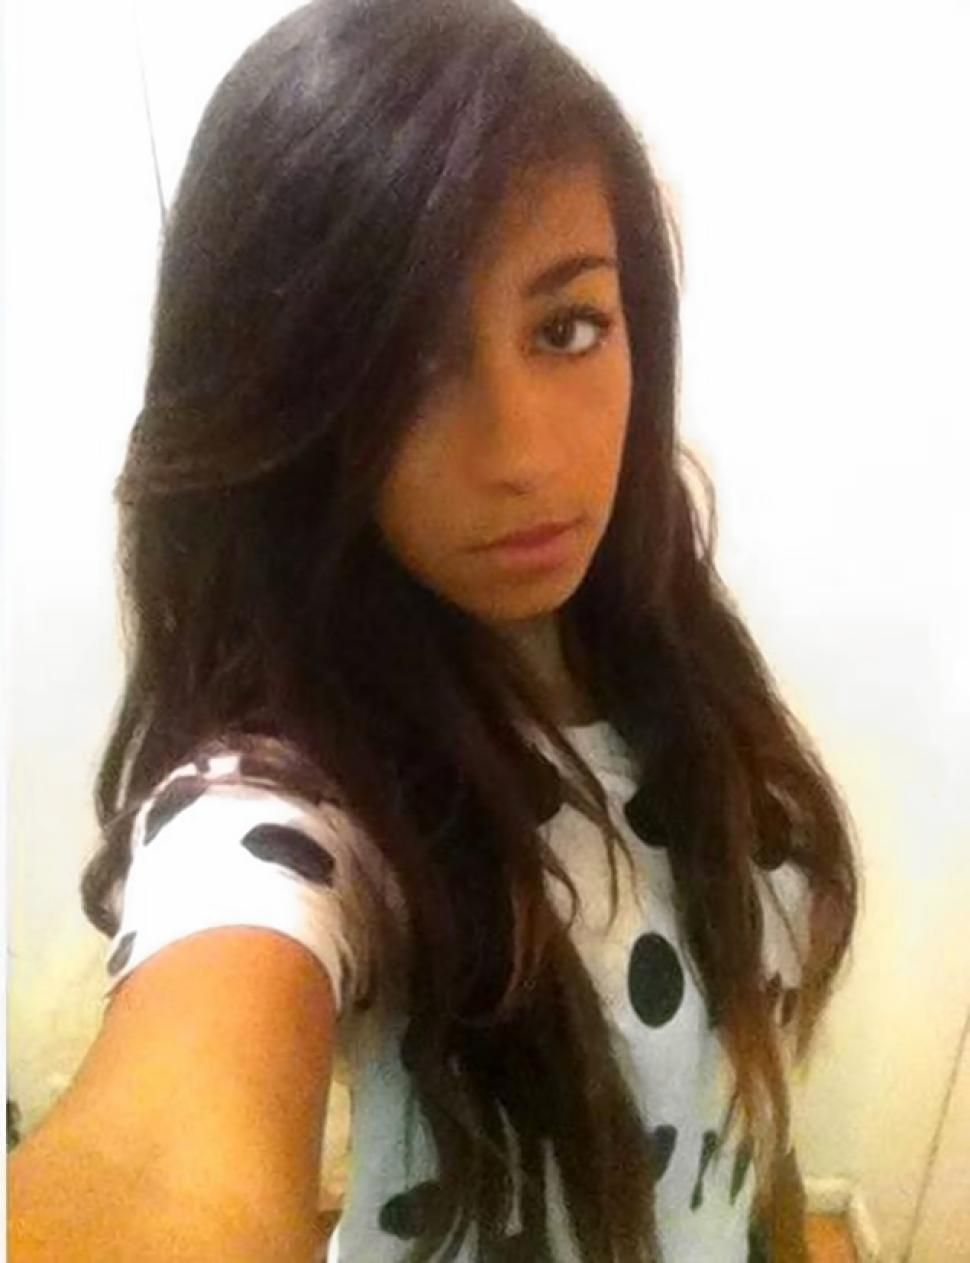 Swell Girl 15 Jumps To Death Off Uws Building Building Girls And Hairstyles For Women Draintrainus